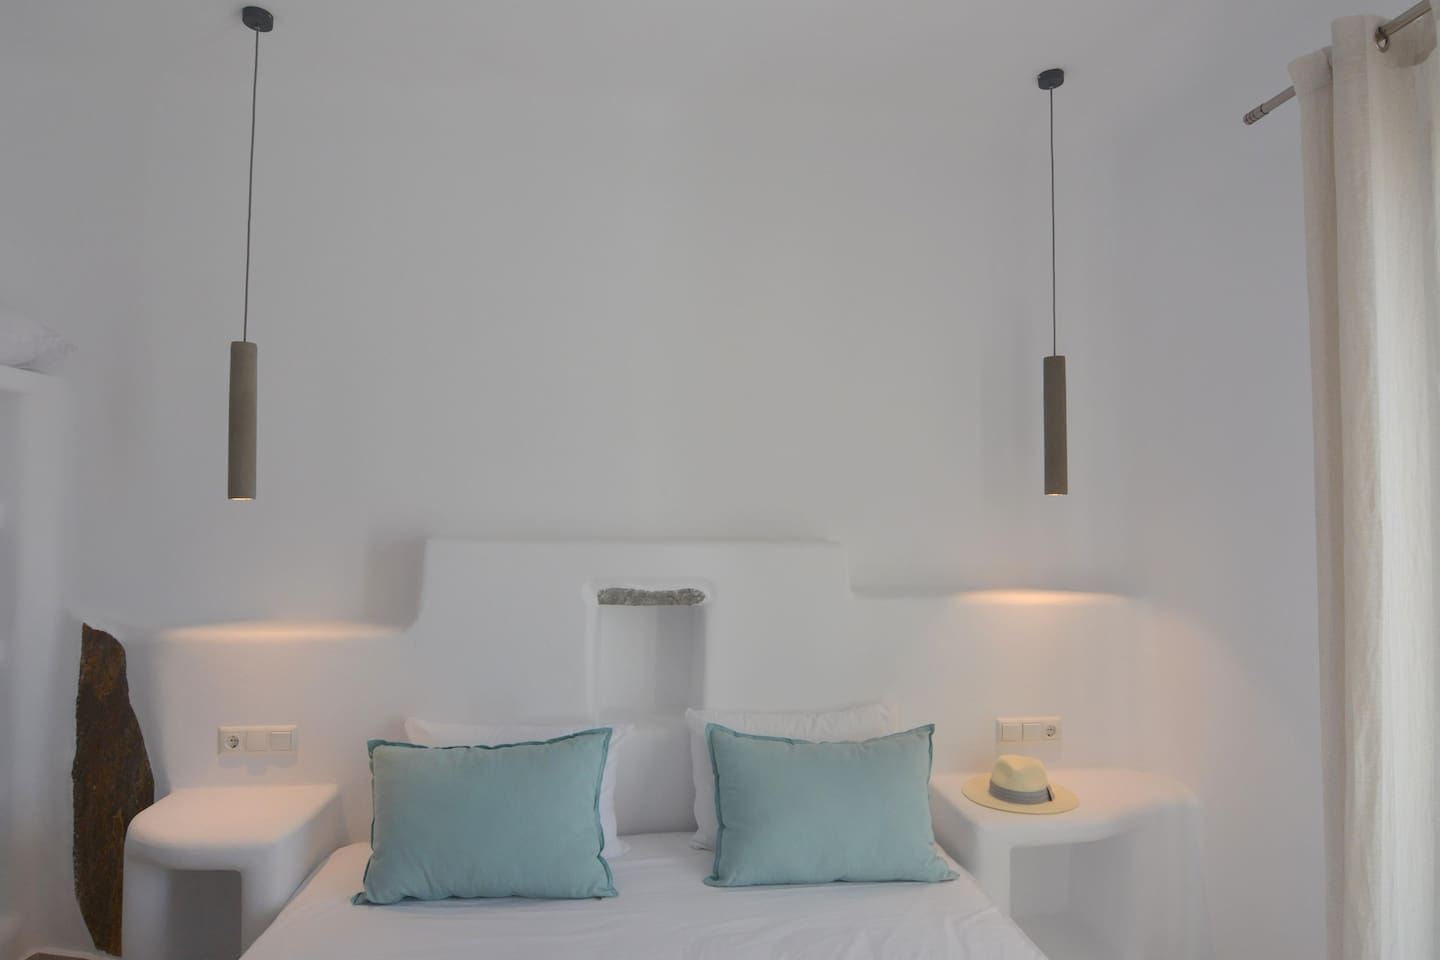 Villa Flo - Villas for Rent in Naxos, Greece